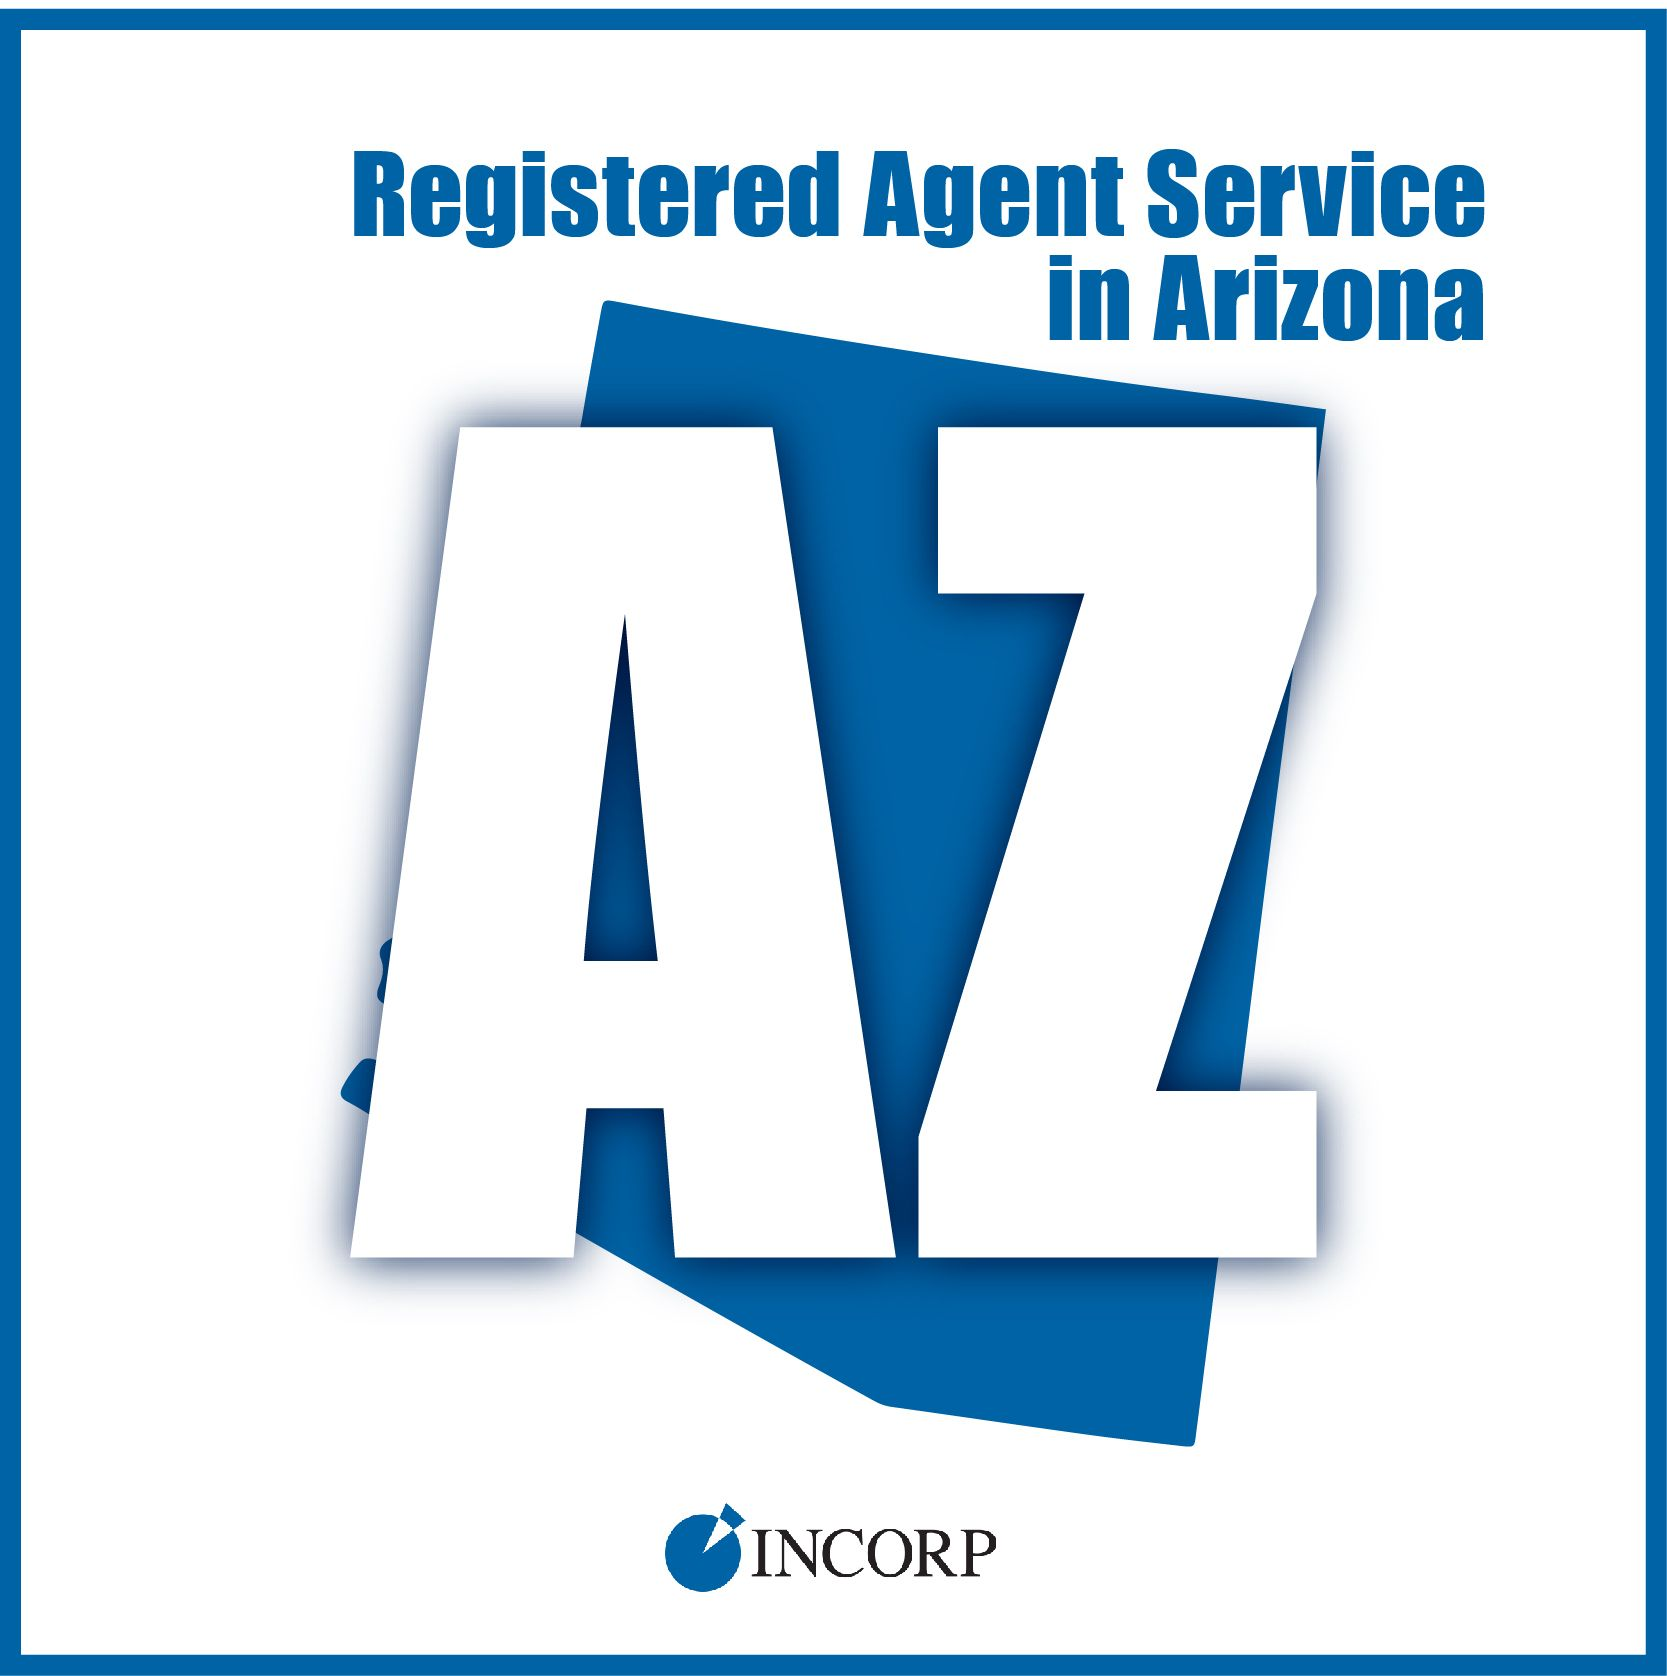 InCorp Offers Registered Agent Service In Arizona And